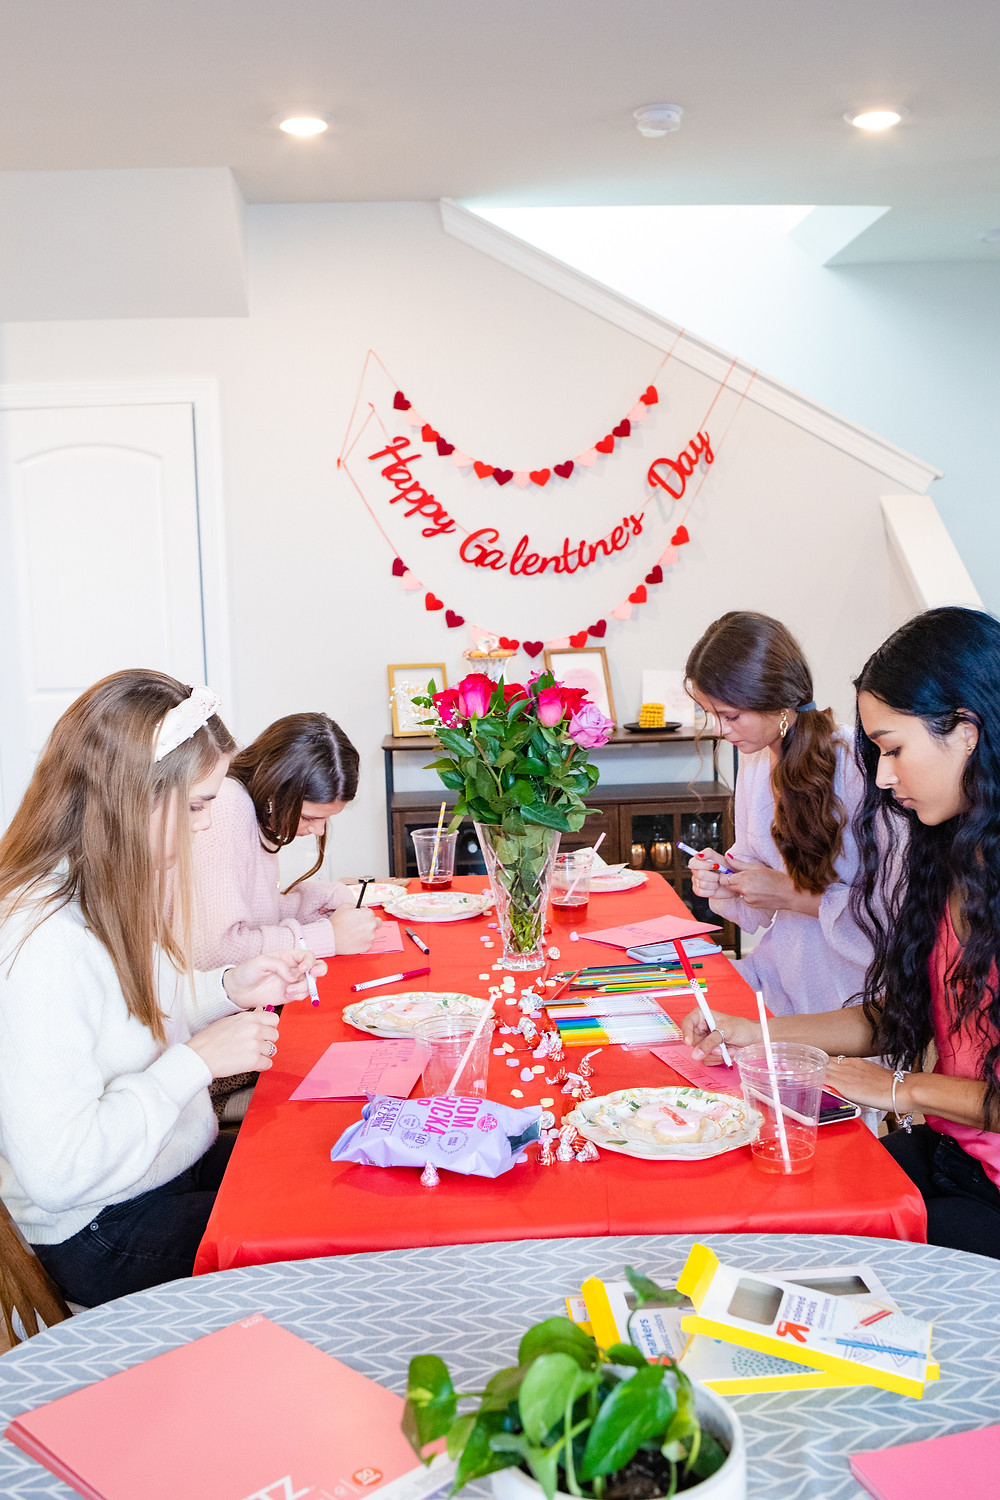 galentines day, Galentine's Day, Galentine's Day Party, Galentines, Parks and Rec Galentine's, Parks and Rec, Galentine's Day Photoshoot, Galentine's Day Decorations, Galentine's Day Party Decor, gina co photography,